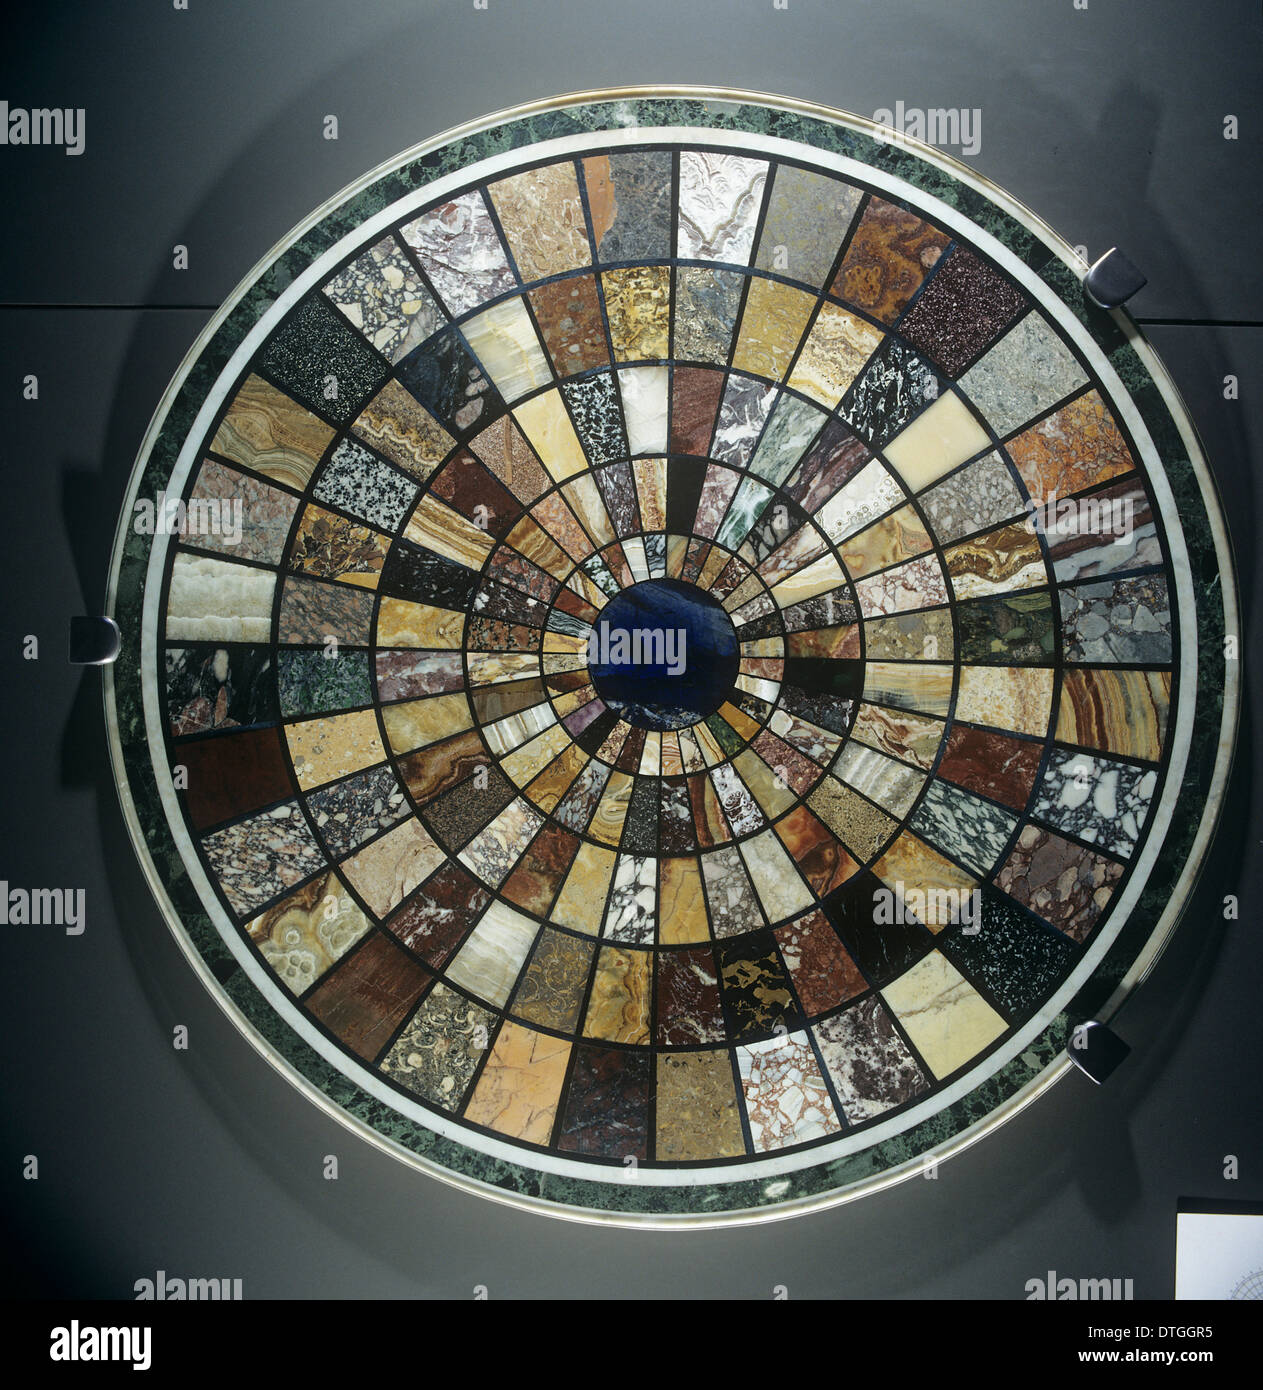 Table top of ancient Roman Marbles - Stock Image